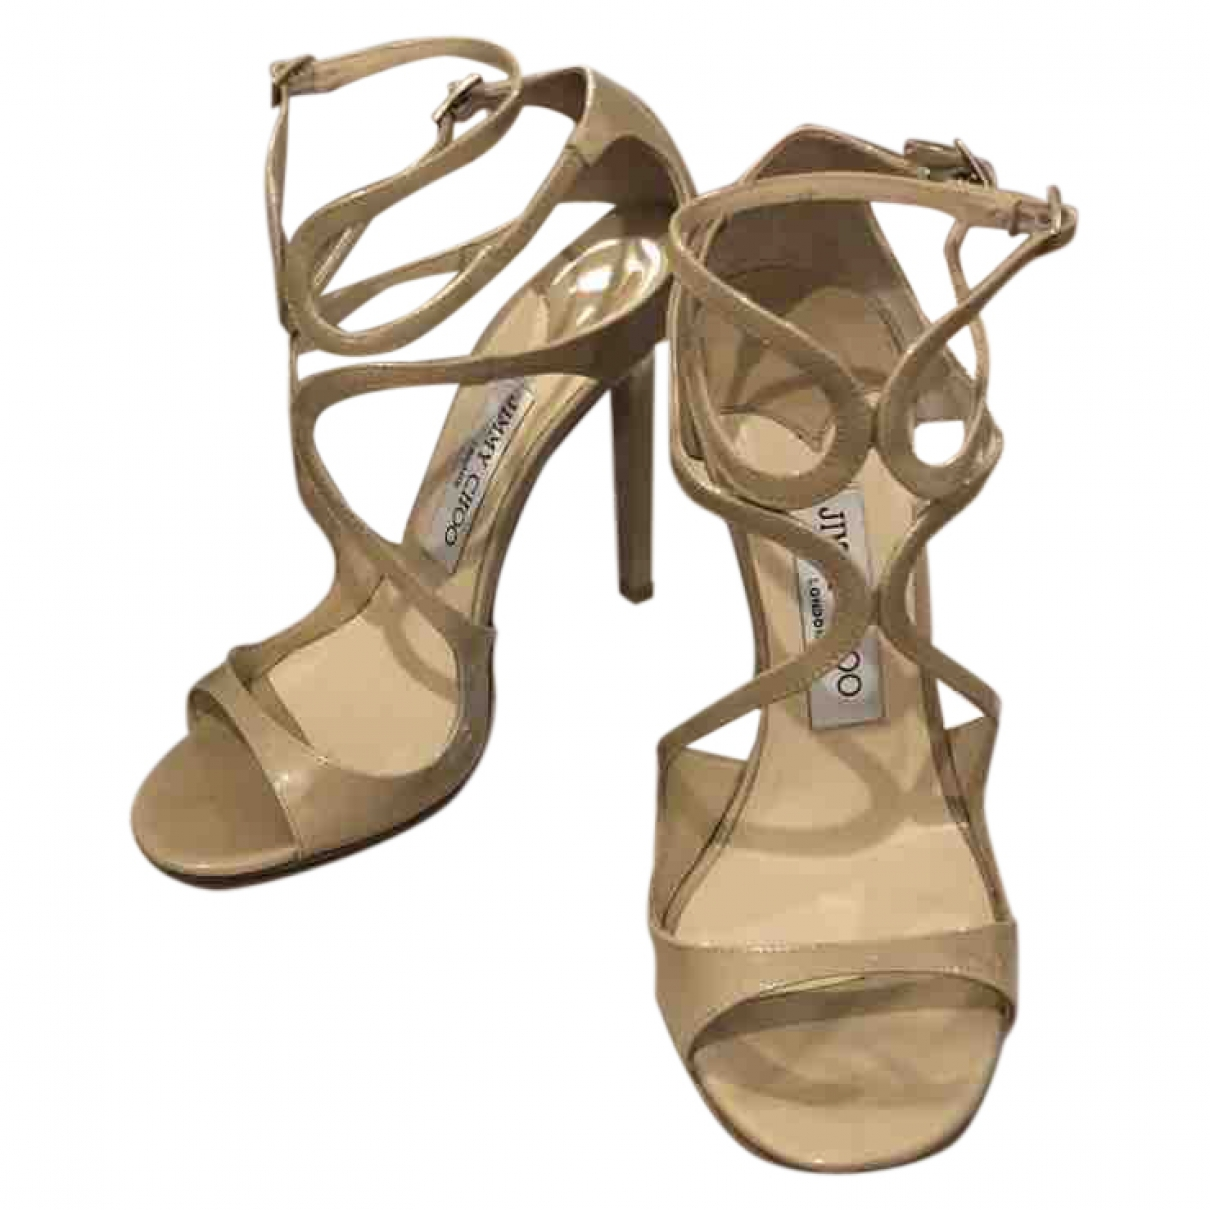 Jimmy Choo Lance Beige Leather Sandals for Women 37 EU